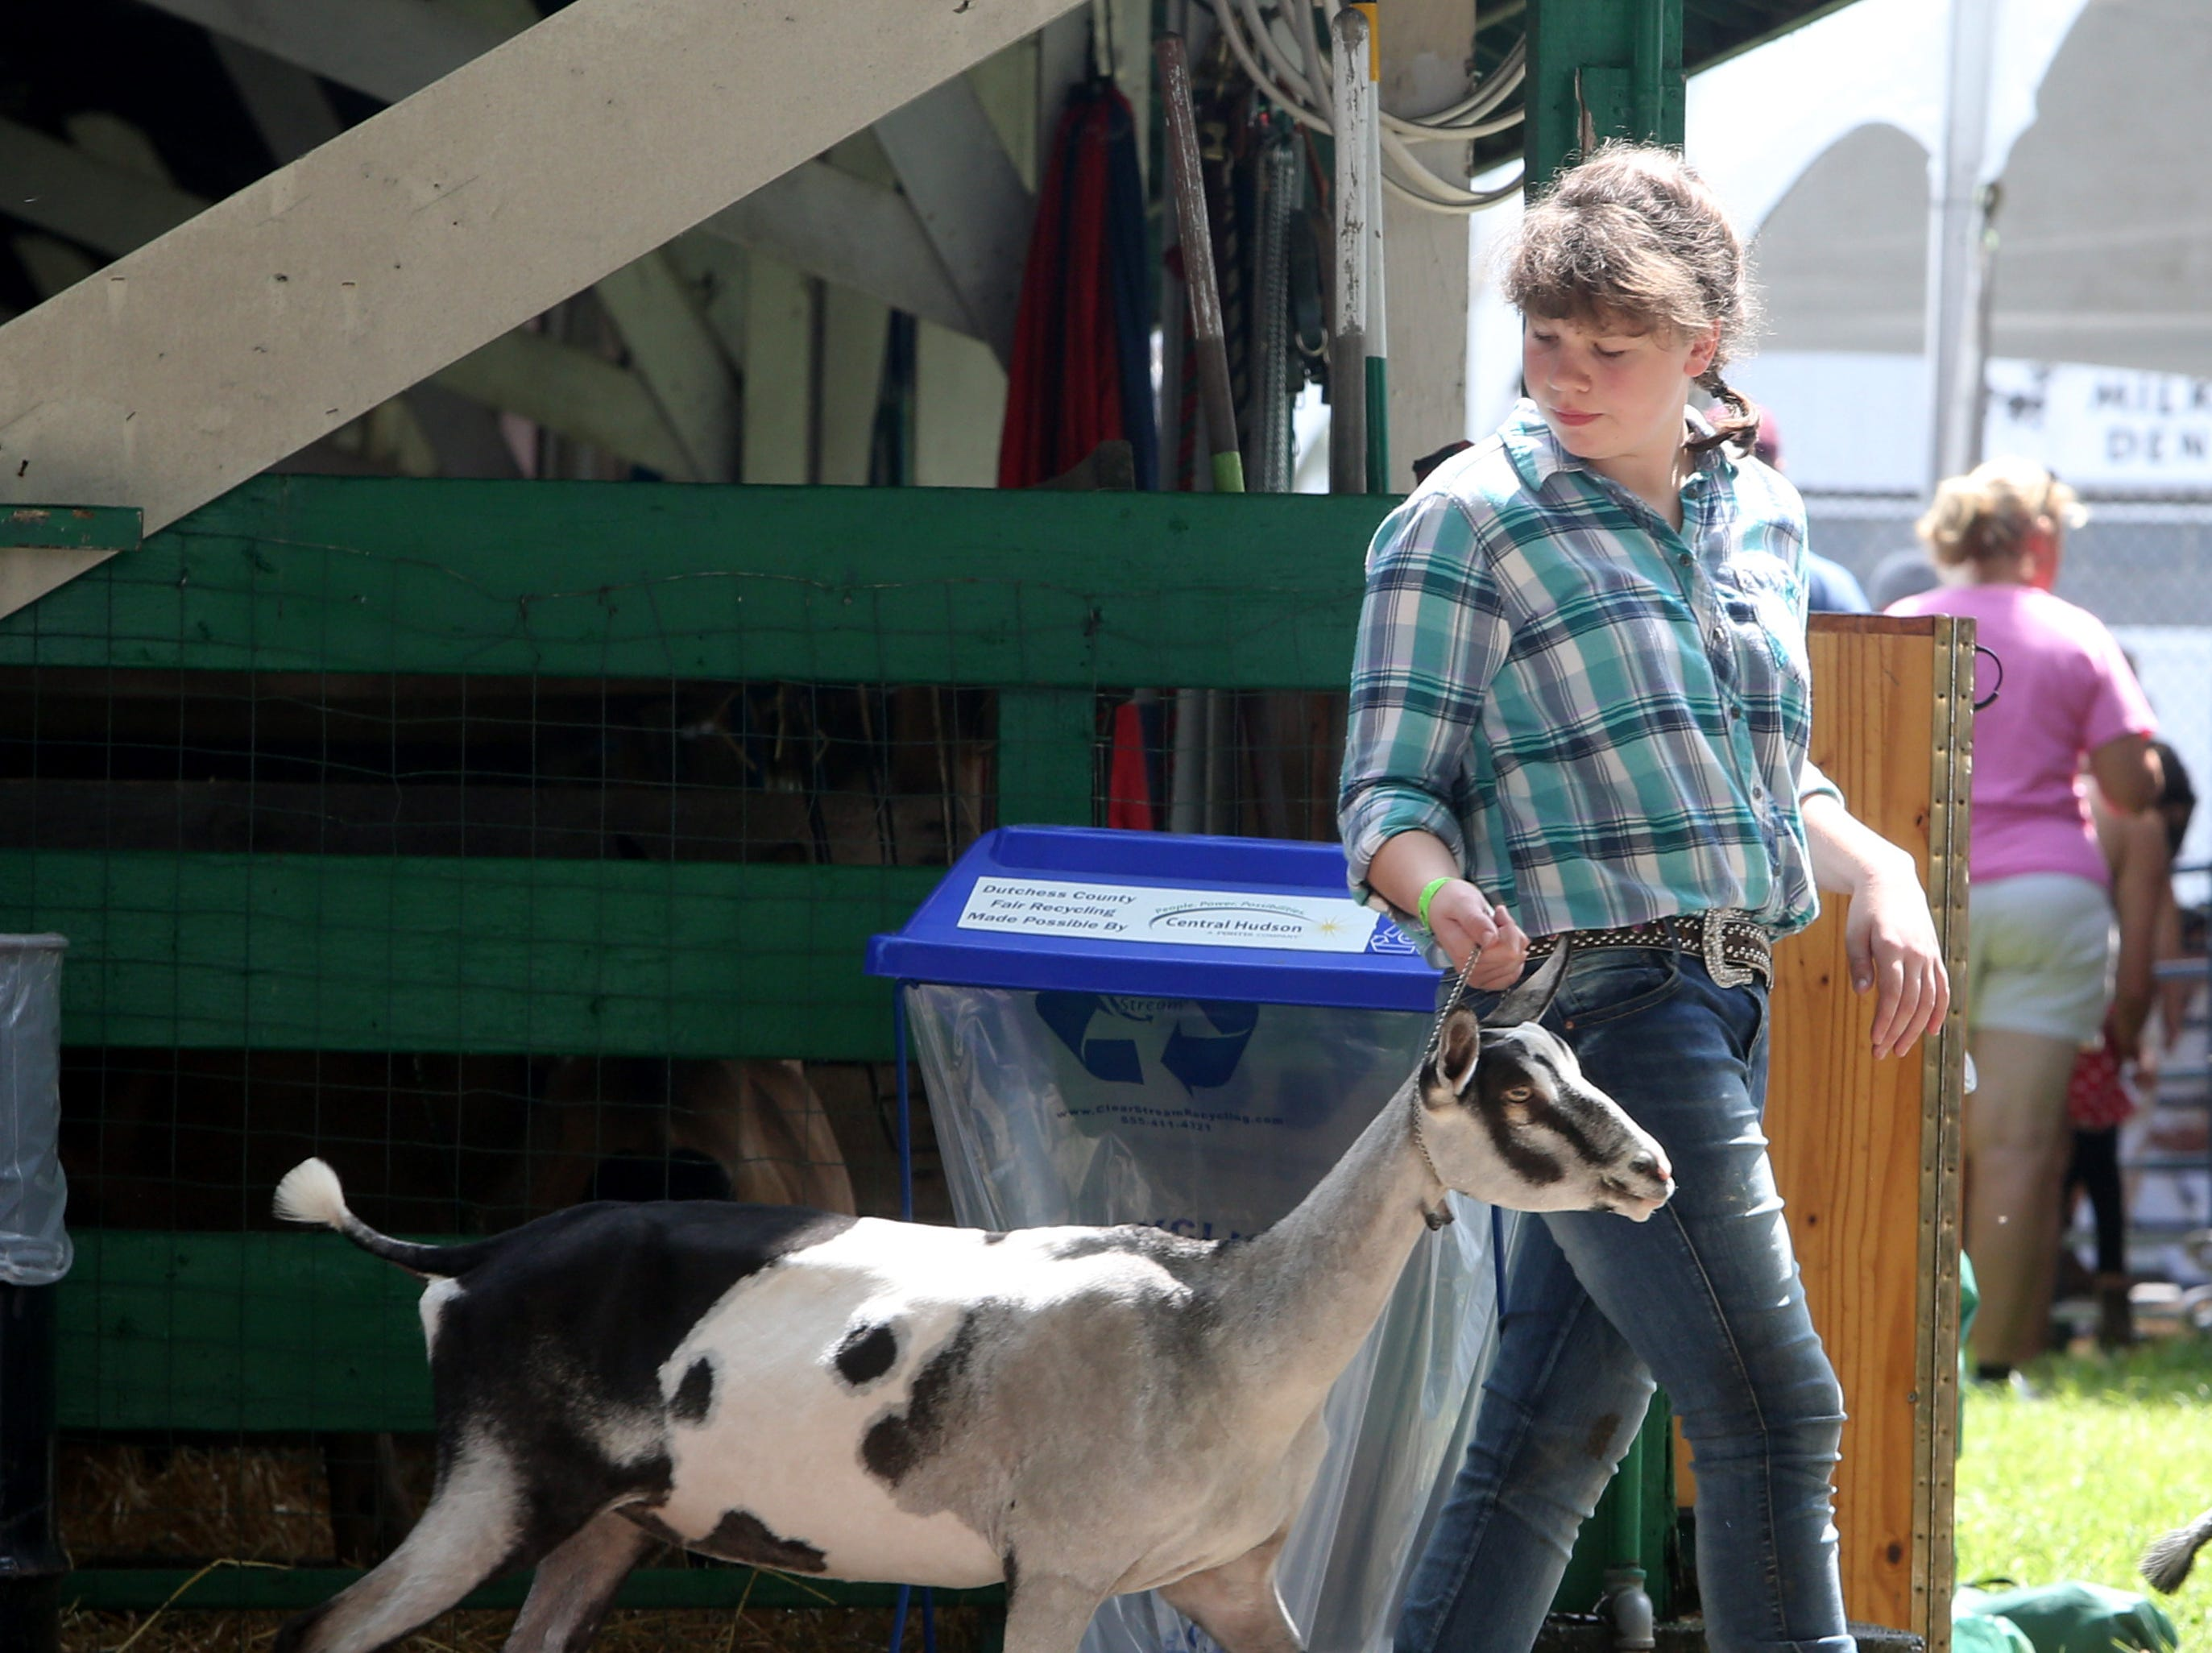 Scenes from the Dutchess County Fair in Rhinebeck on August 21 2018.